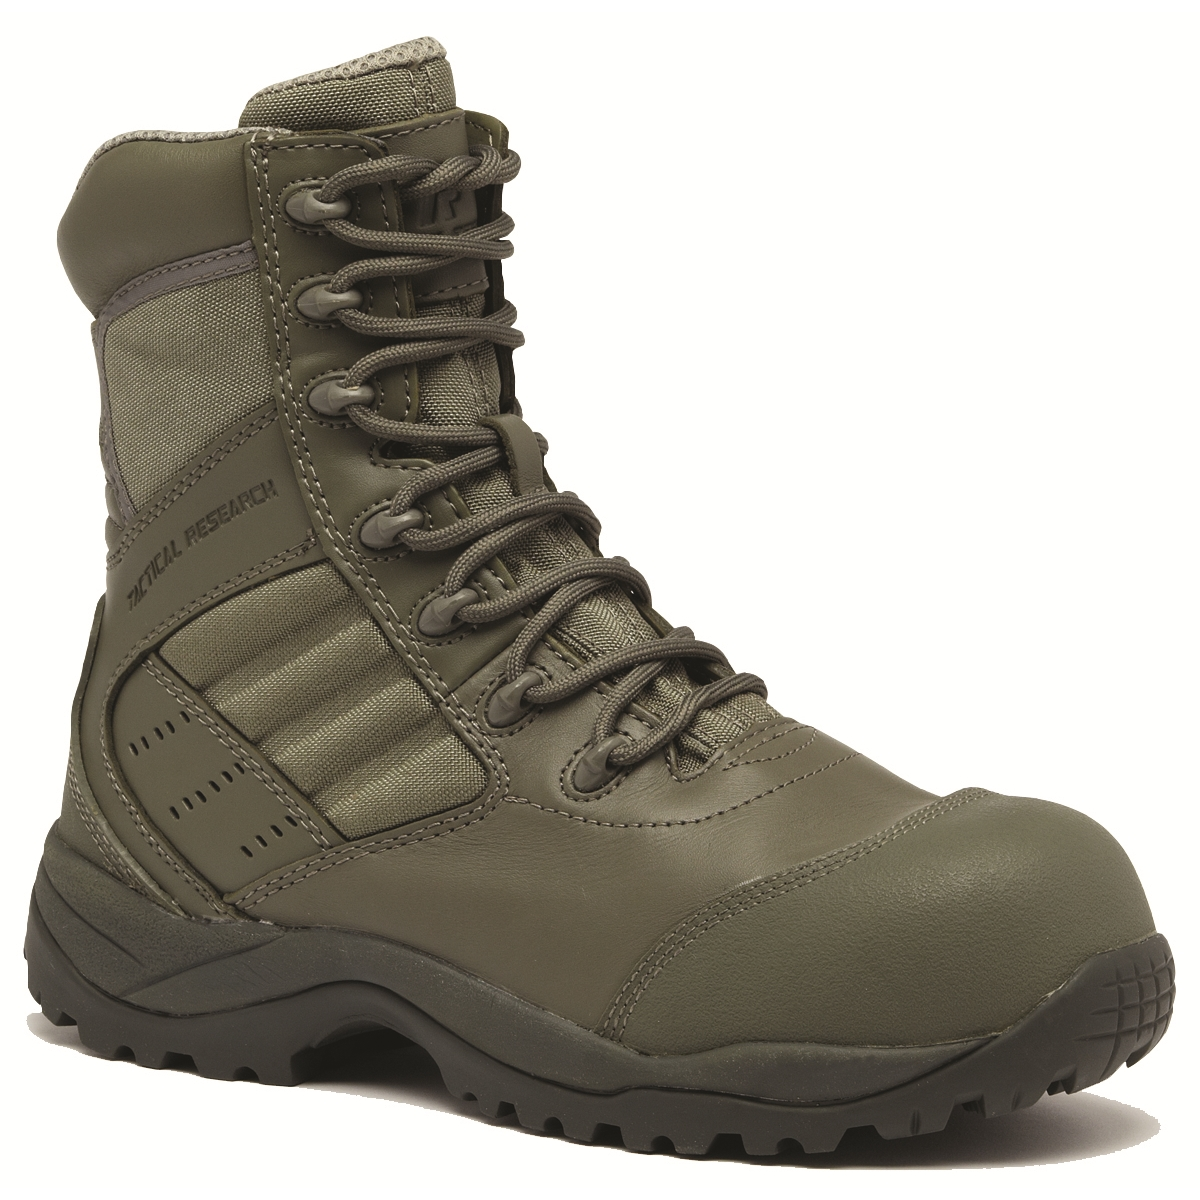 Tactical Research Belleville Maintainer Sage Green Lighweight Composite Toe Tactical Boot at Sears.com